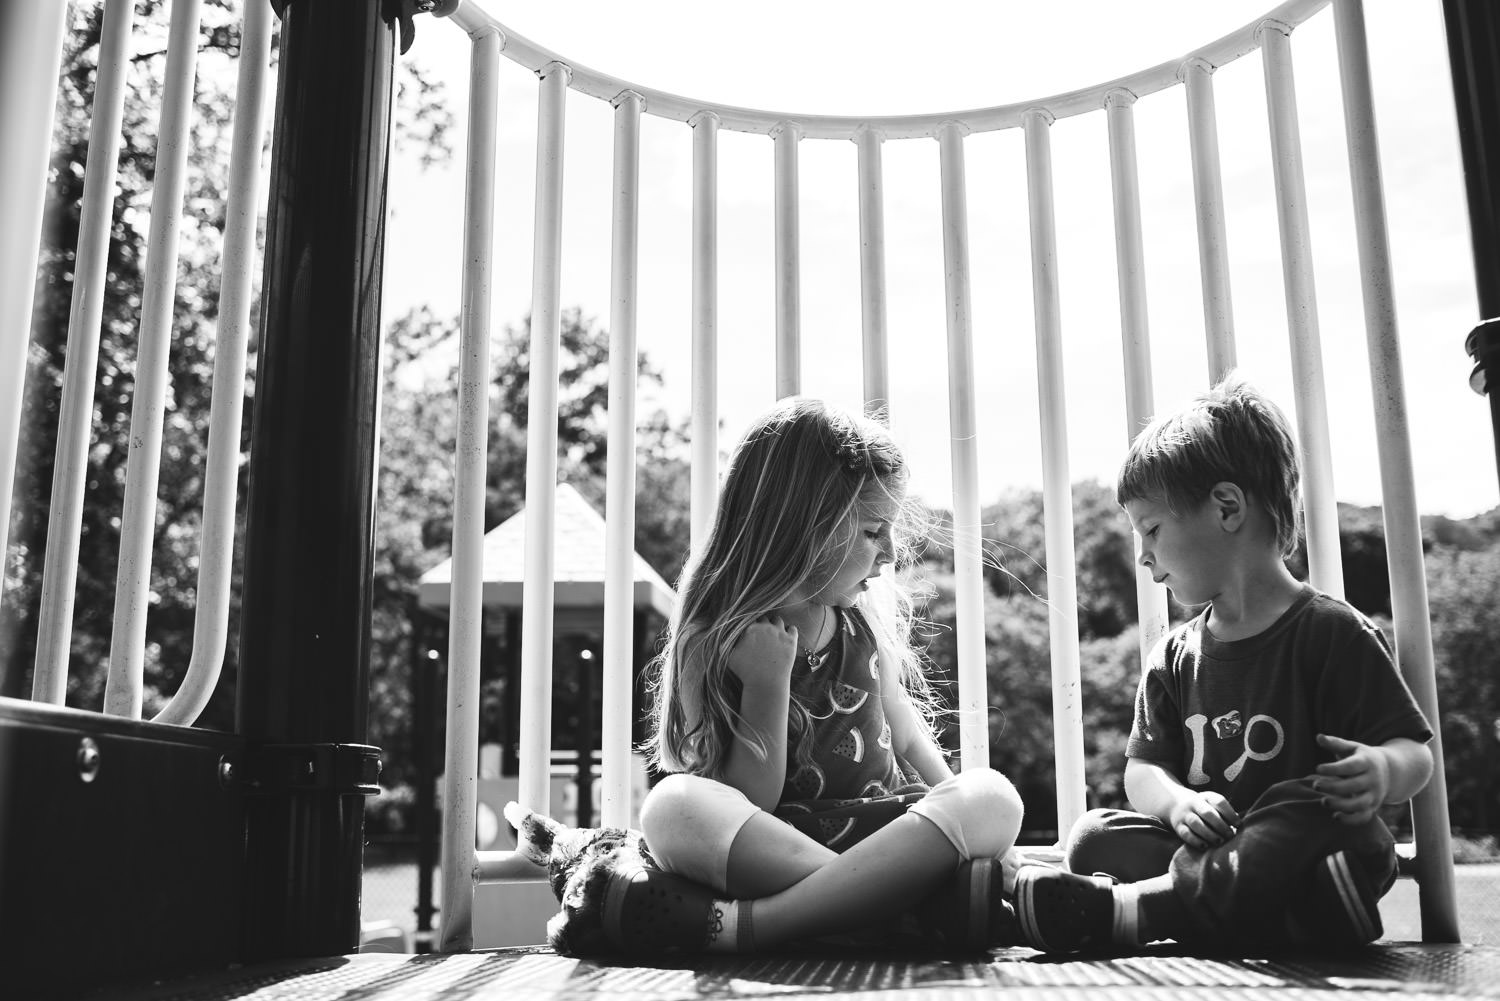 A brother and sister sit peacefully chatting on playground equipment.